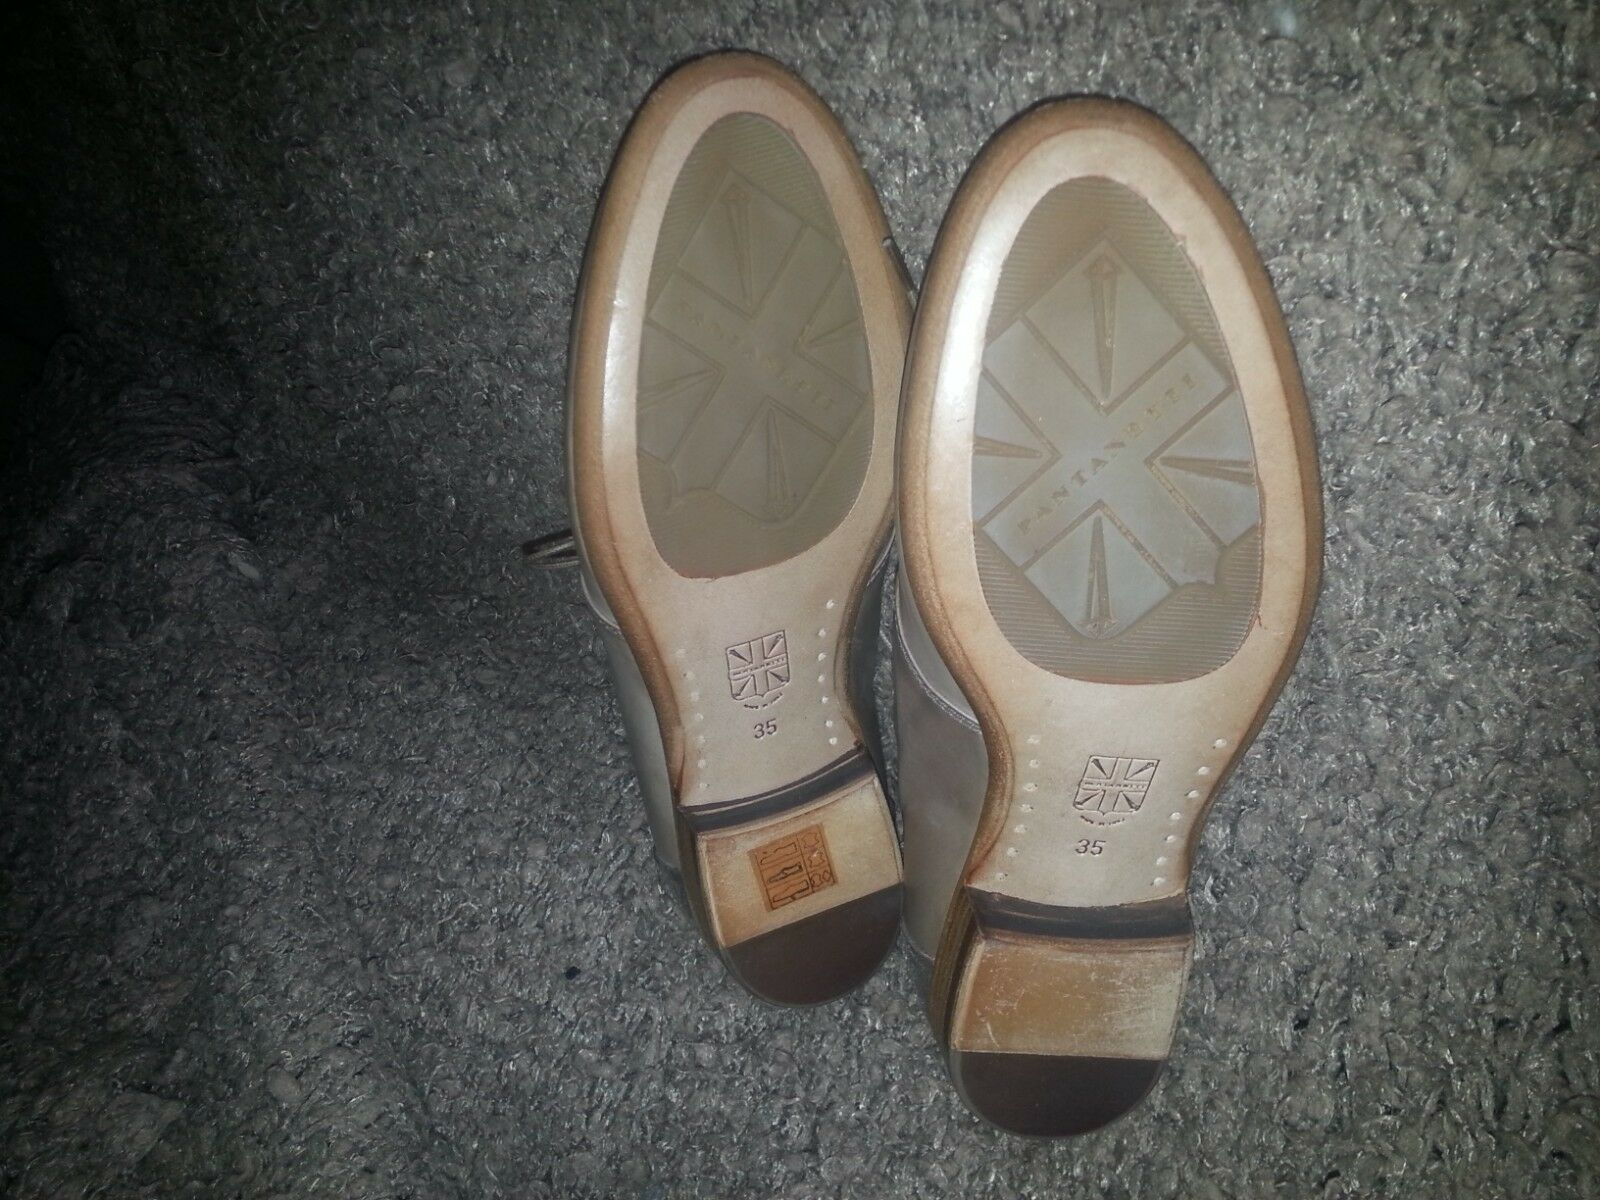 PANTANETTI-Lace Up Up Up Loafers-Taupe Tan W Metallic Detail-Taille 35-Excellent 3b18c3